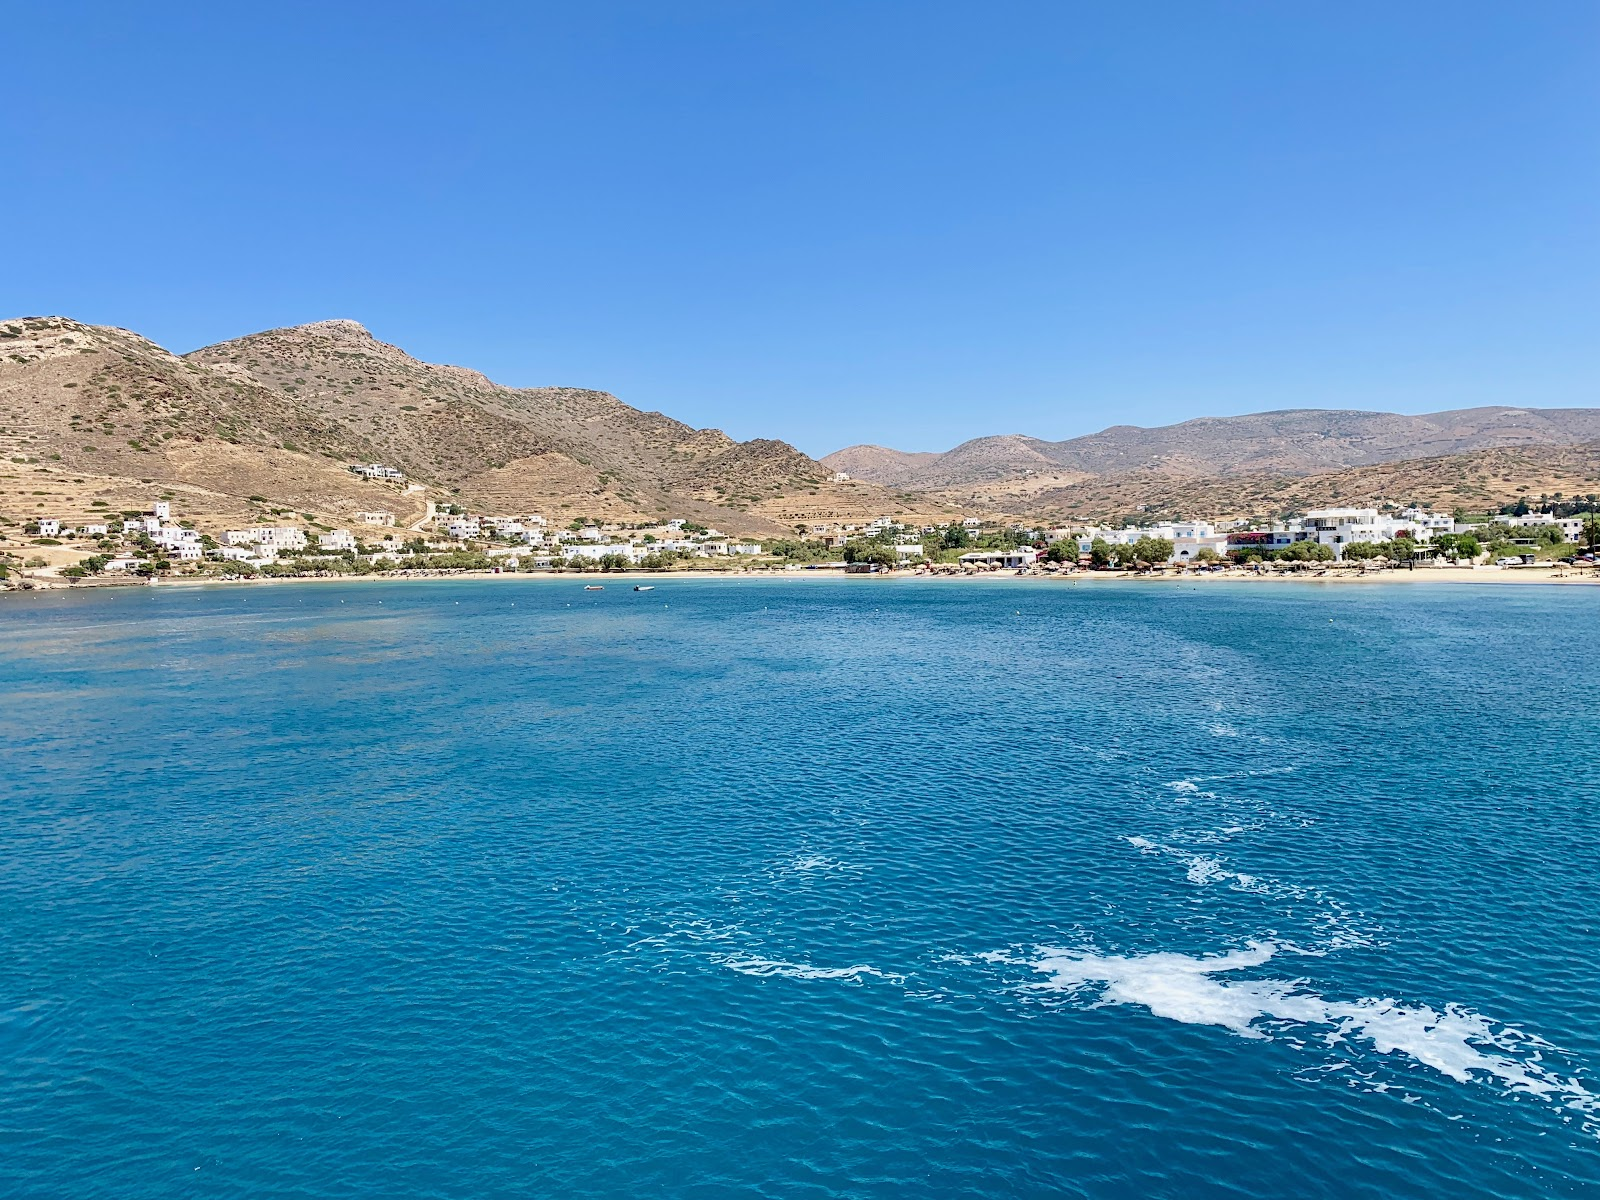 Paros island - the prettiest Greek island. What to do with 2 days in Paros